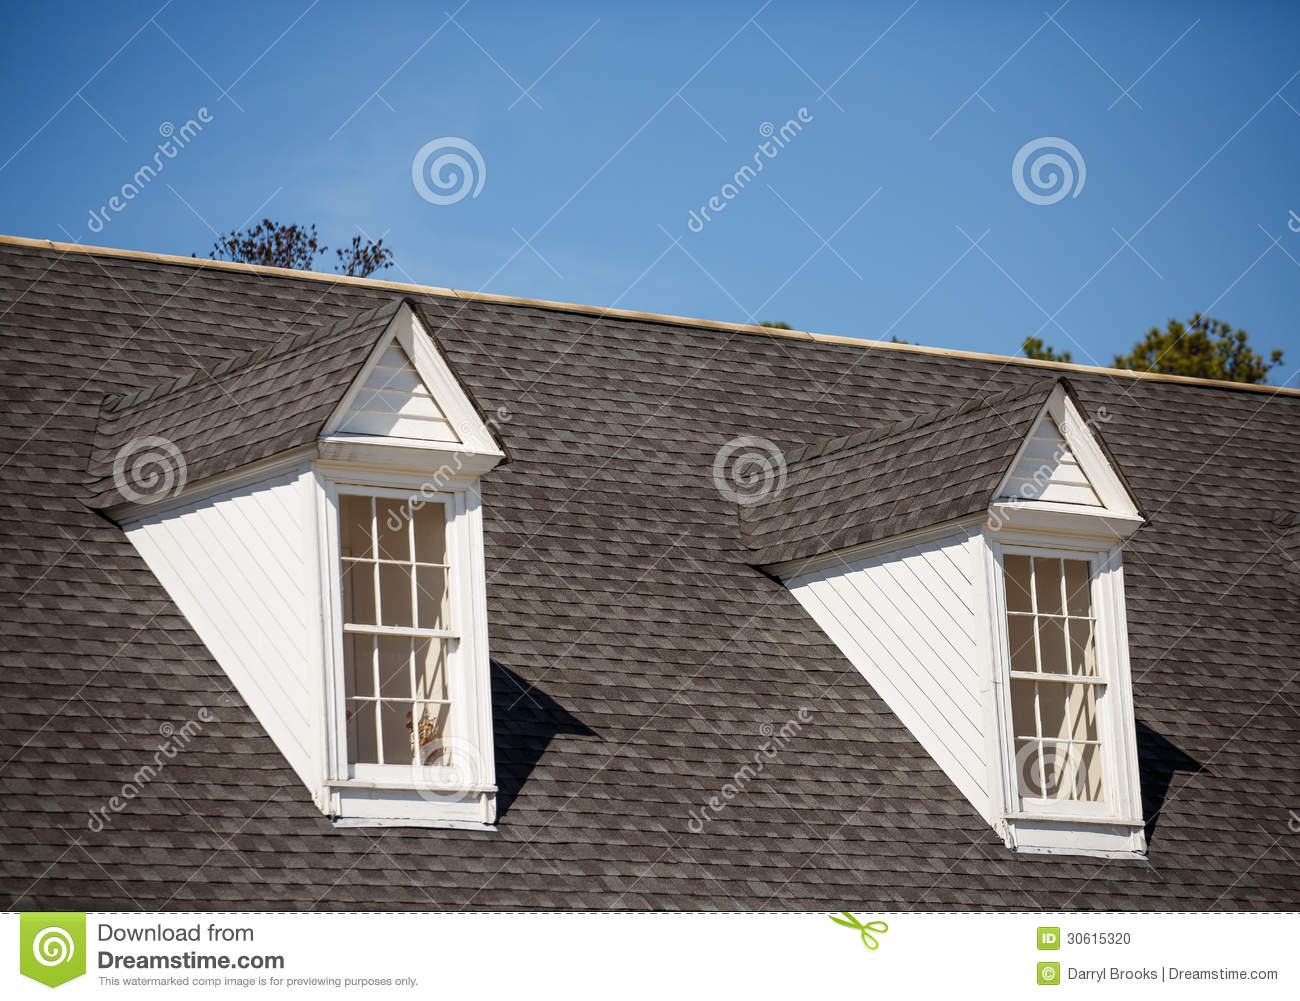 Two White Dormers On Grey Shingle Roof Stock Photo - Image: 30615320